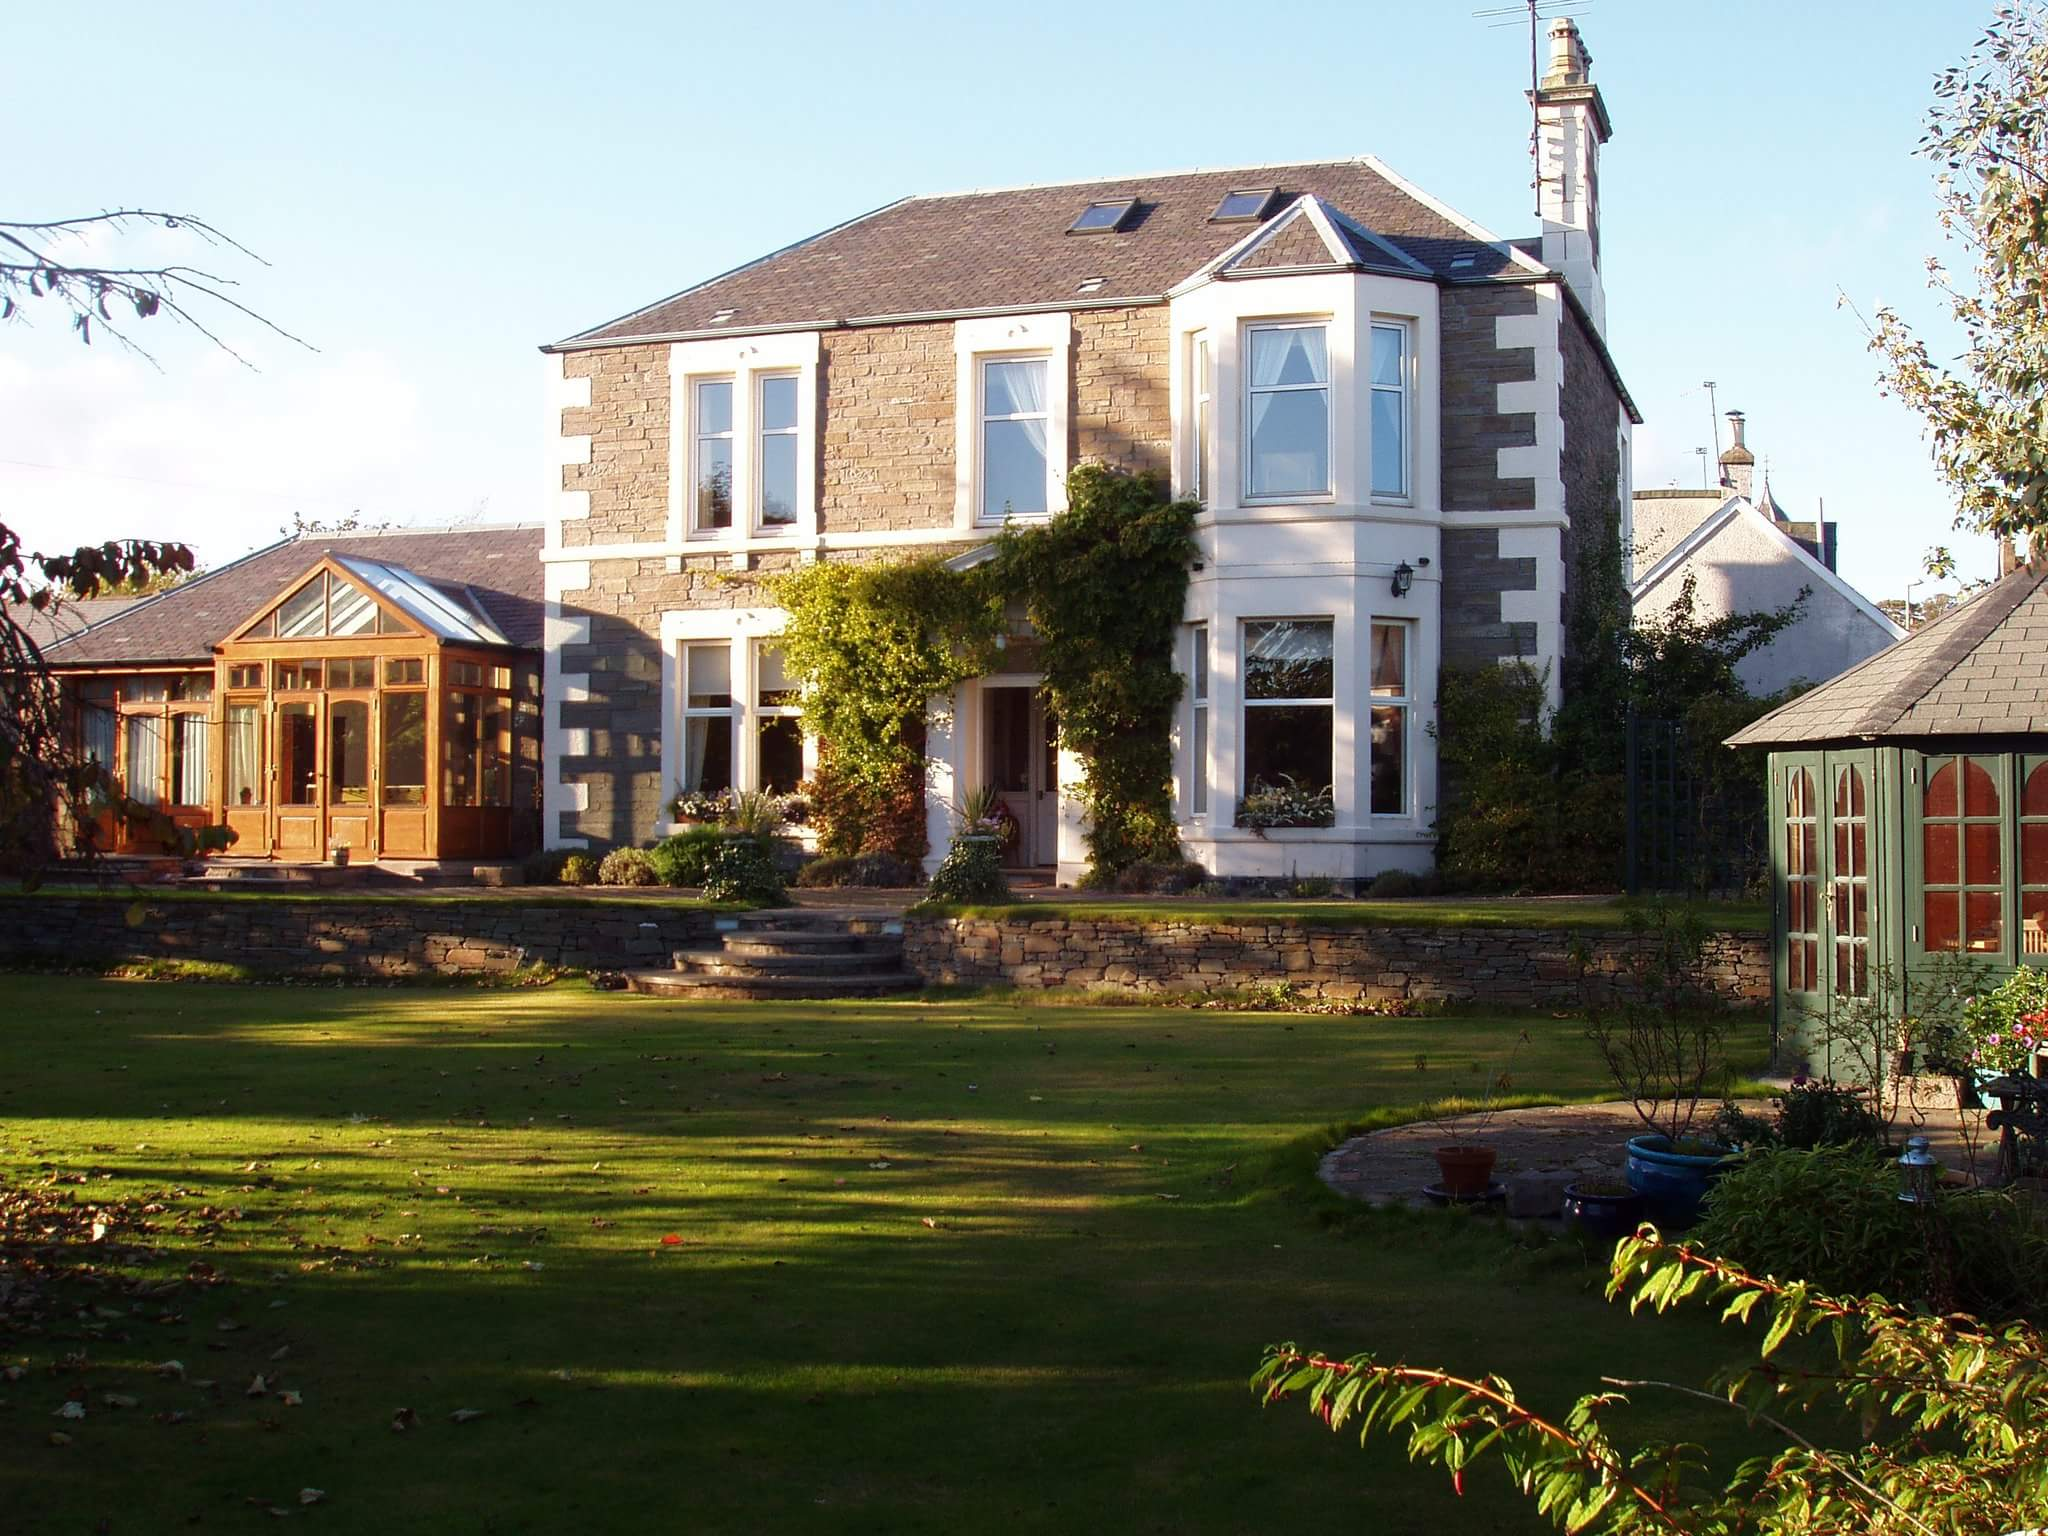 Park House B&B, Carnoustie